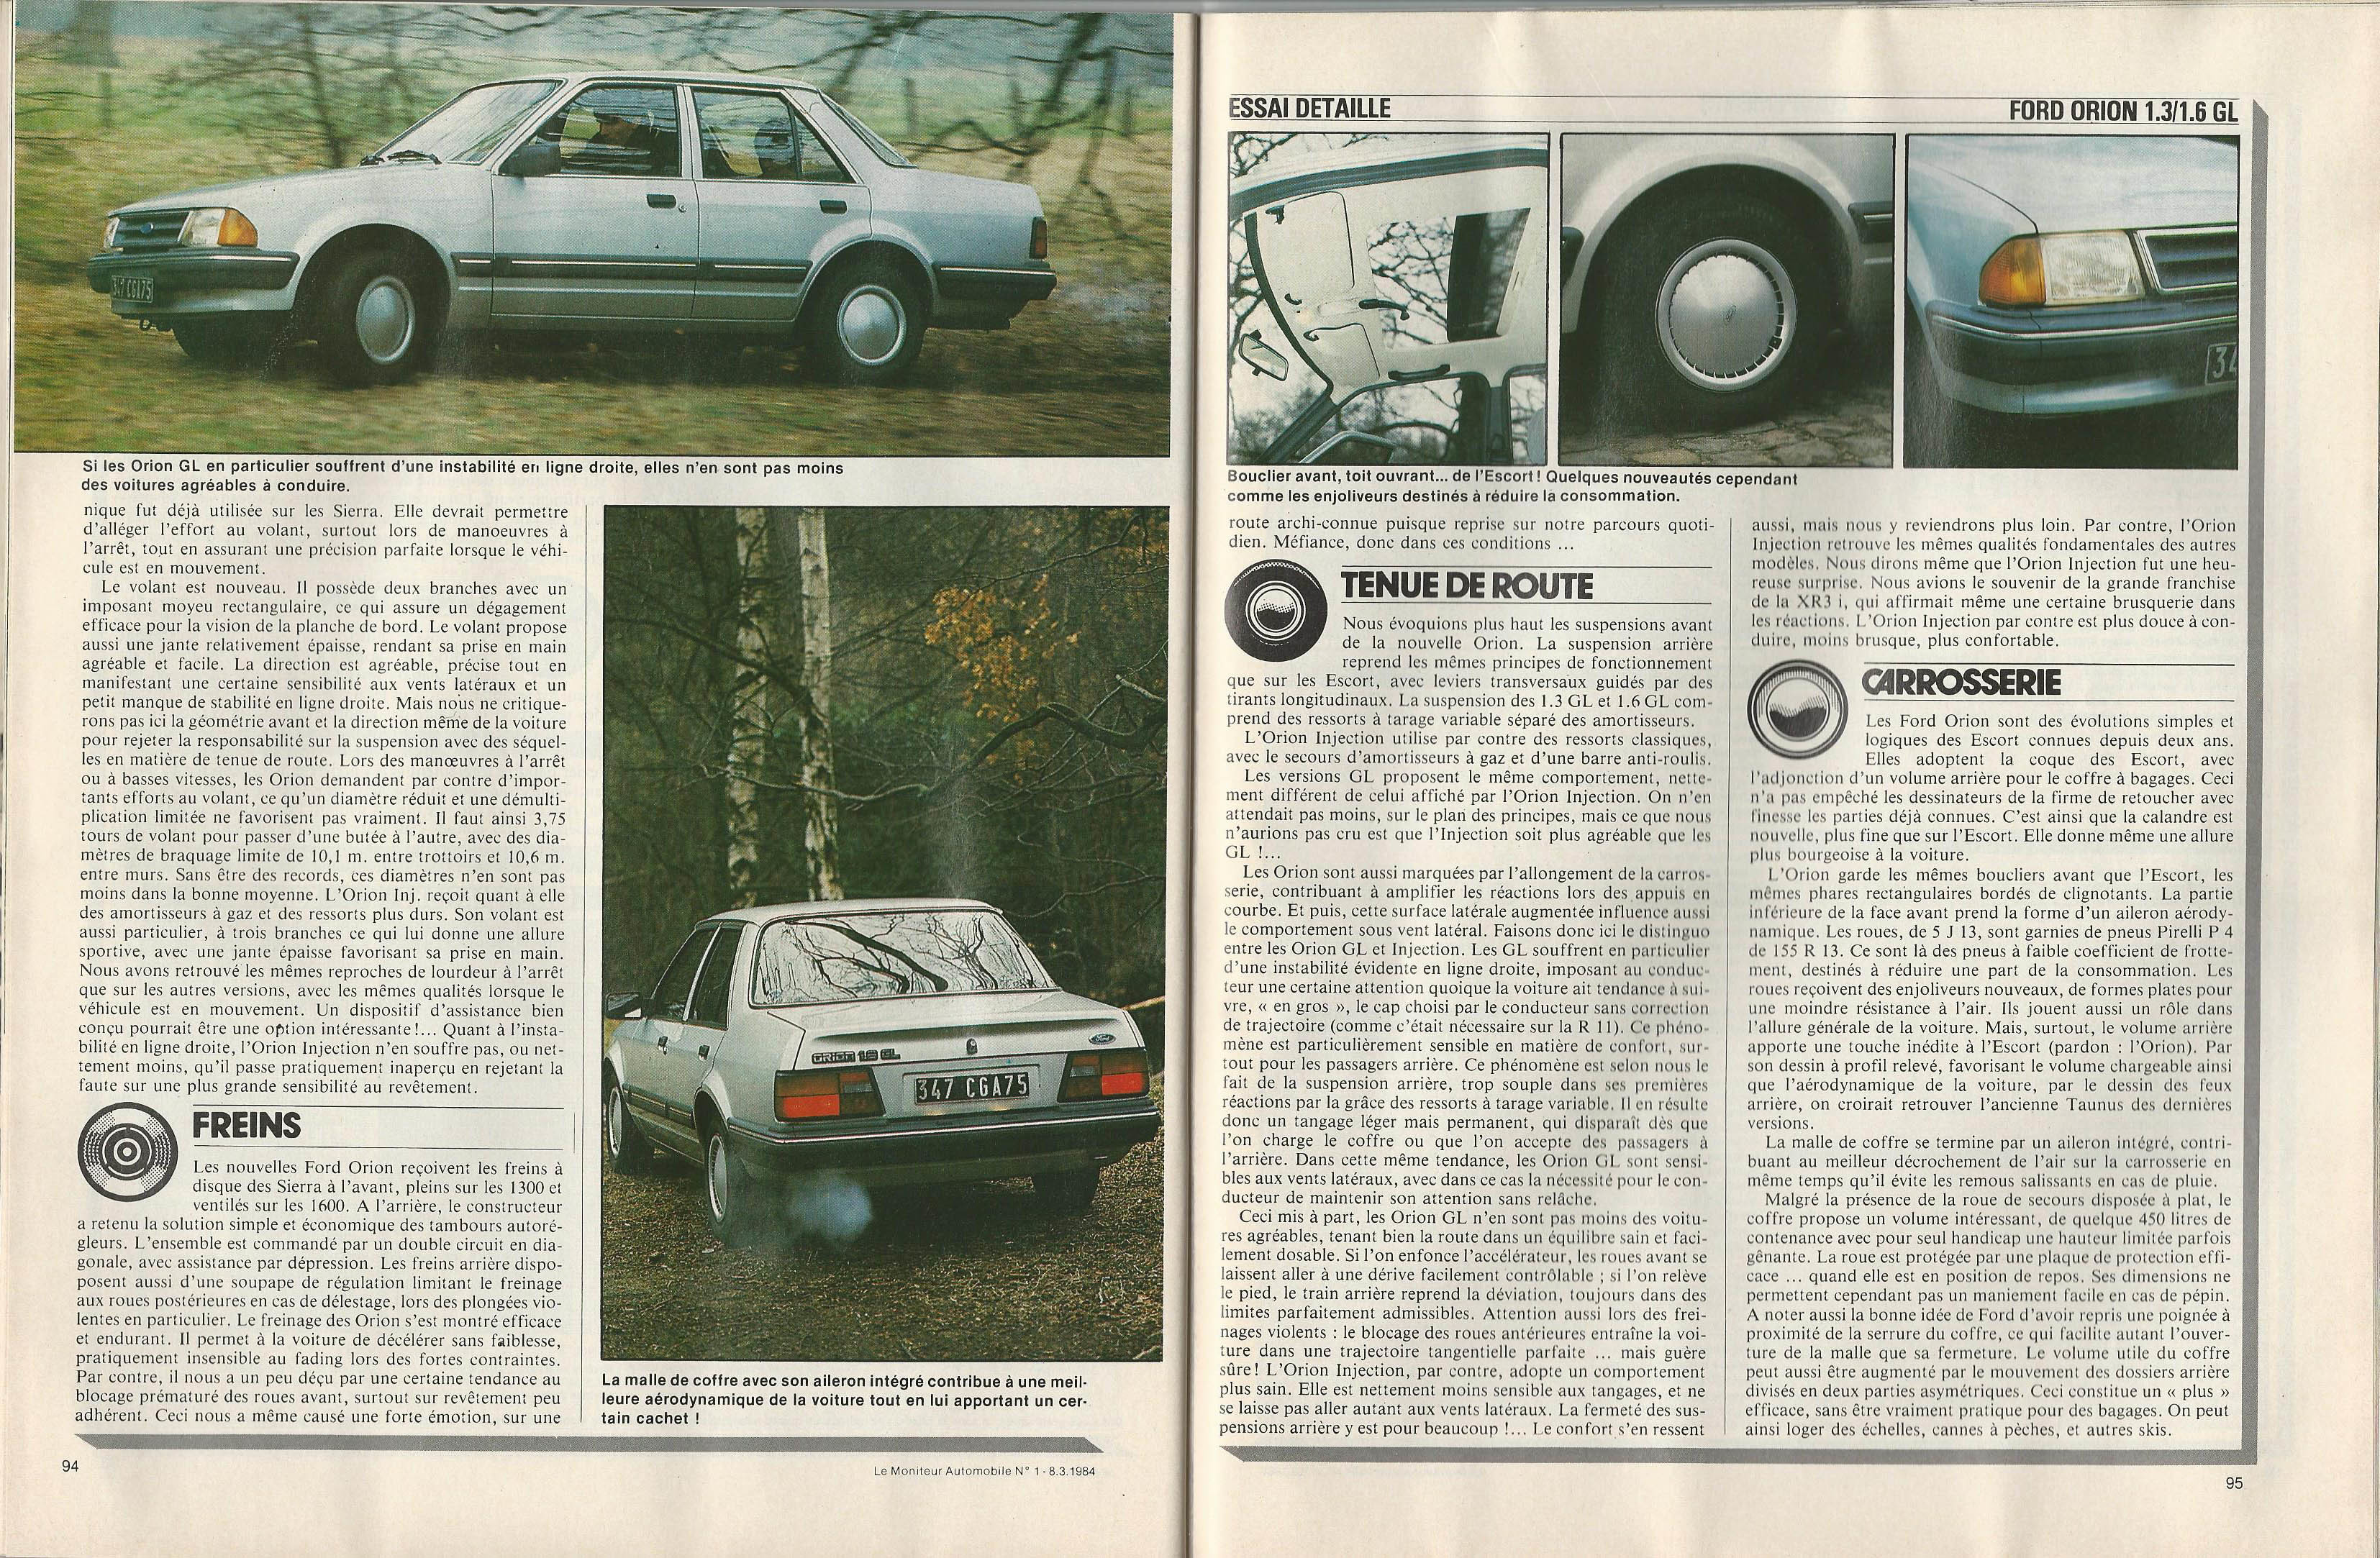 Moniteur Automobile 01 - 08 Mars 1984 (39)